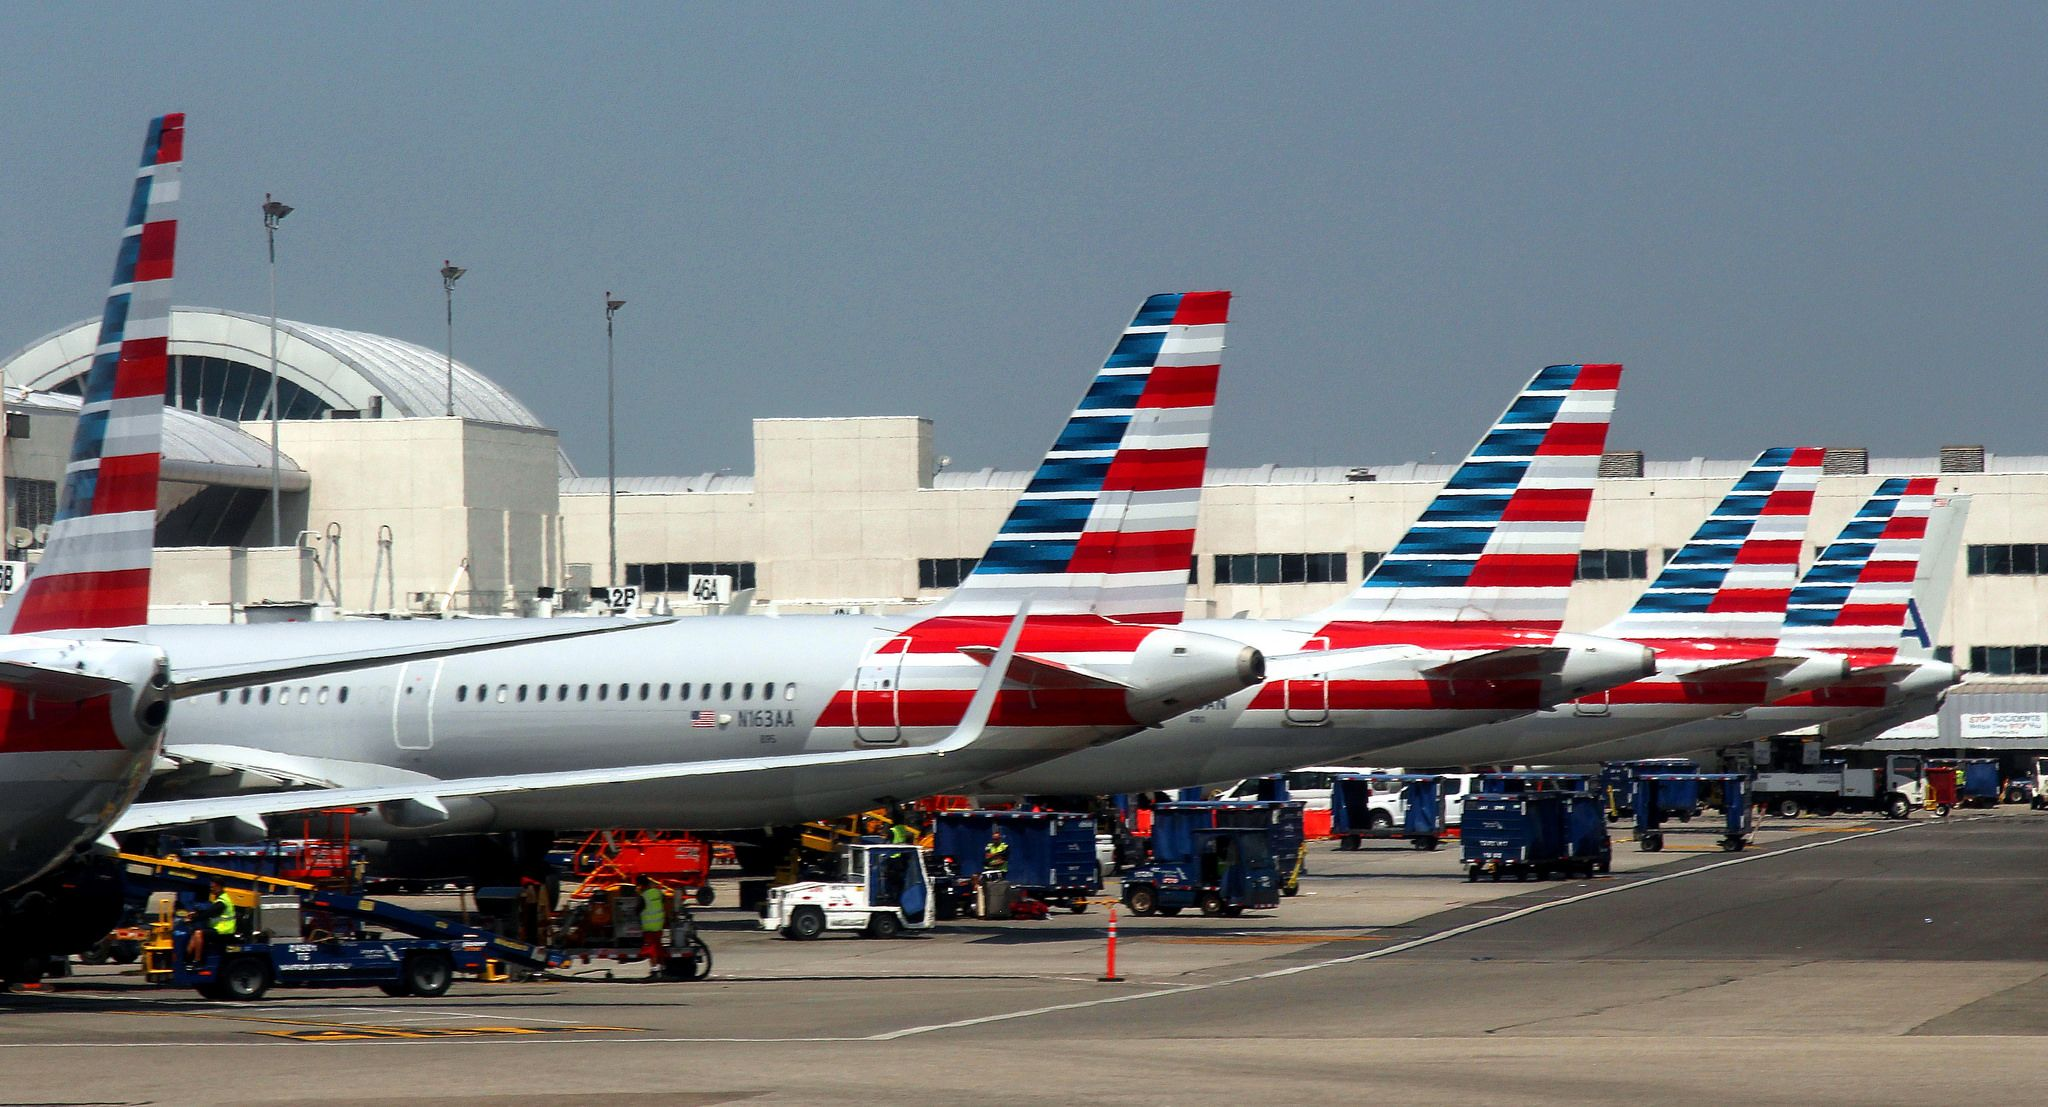 AA * American Airlines American, Air photo, Airline flights